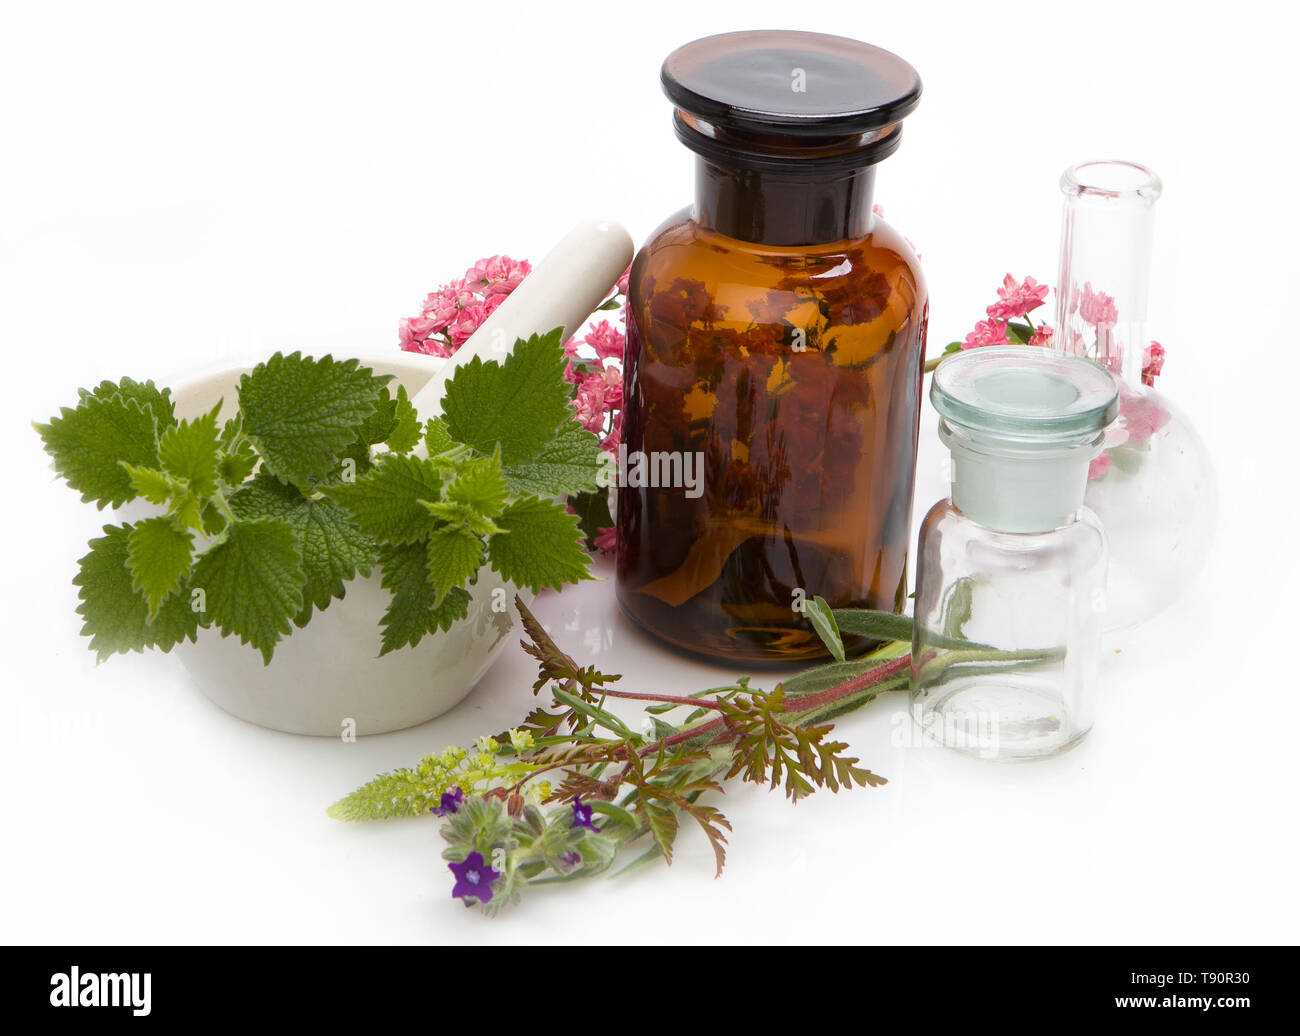 Herbal Medicines Stock Photos & Herbal Medicines Stock Images - Alamy